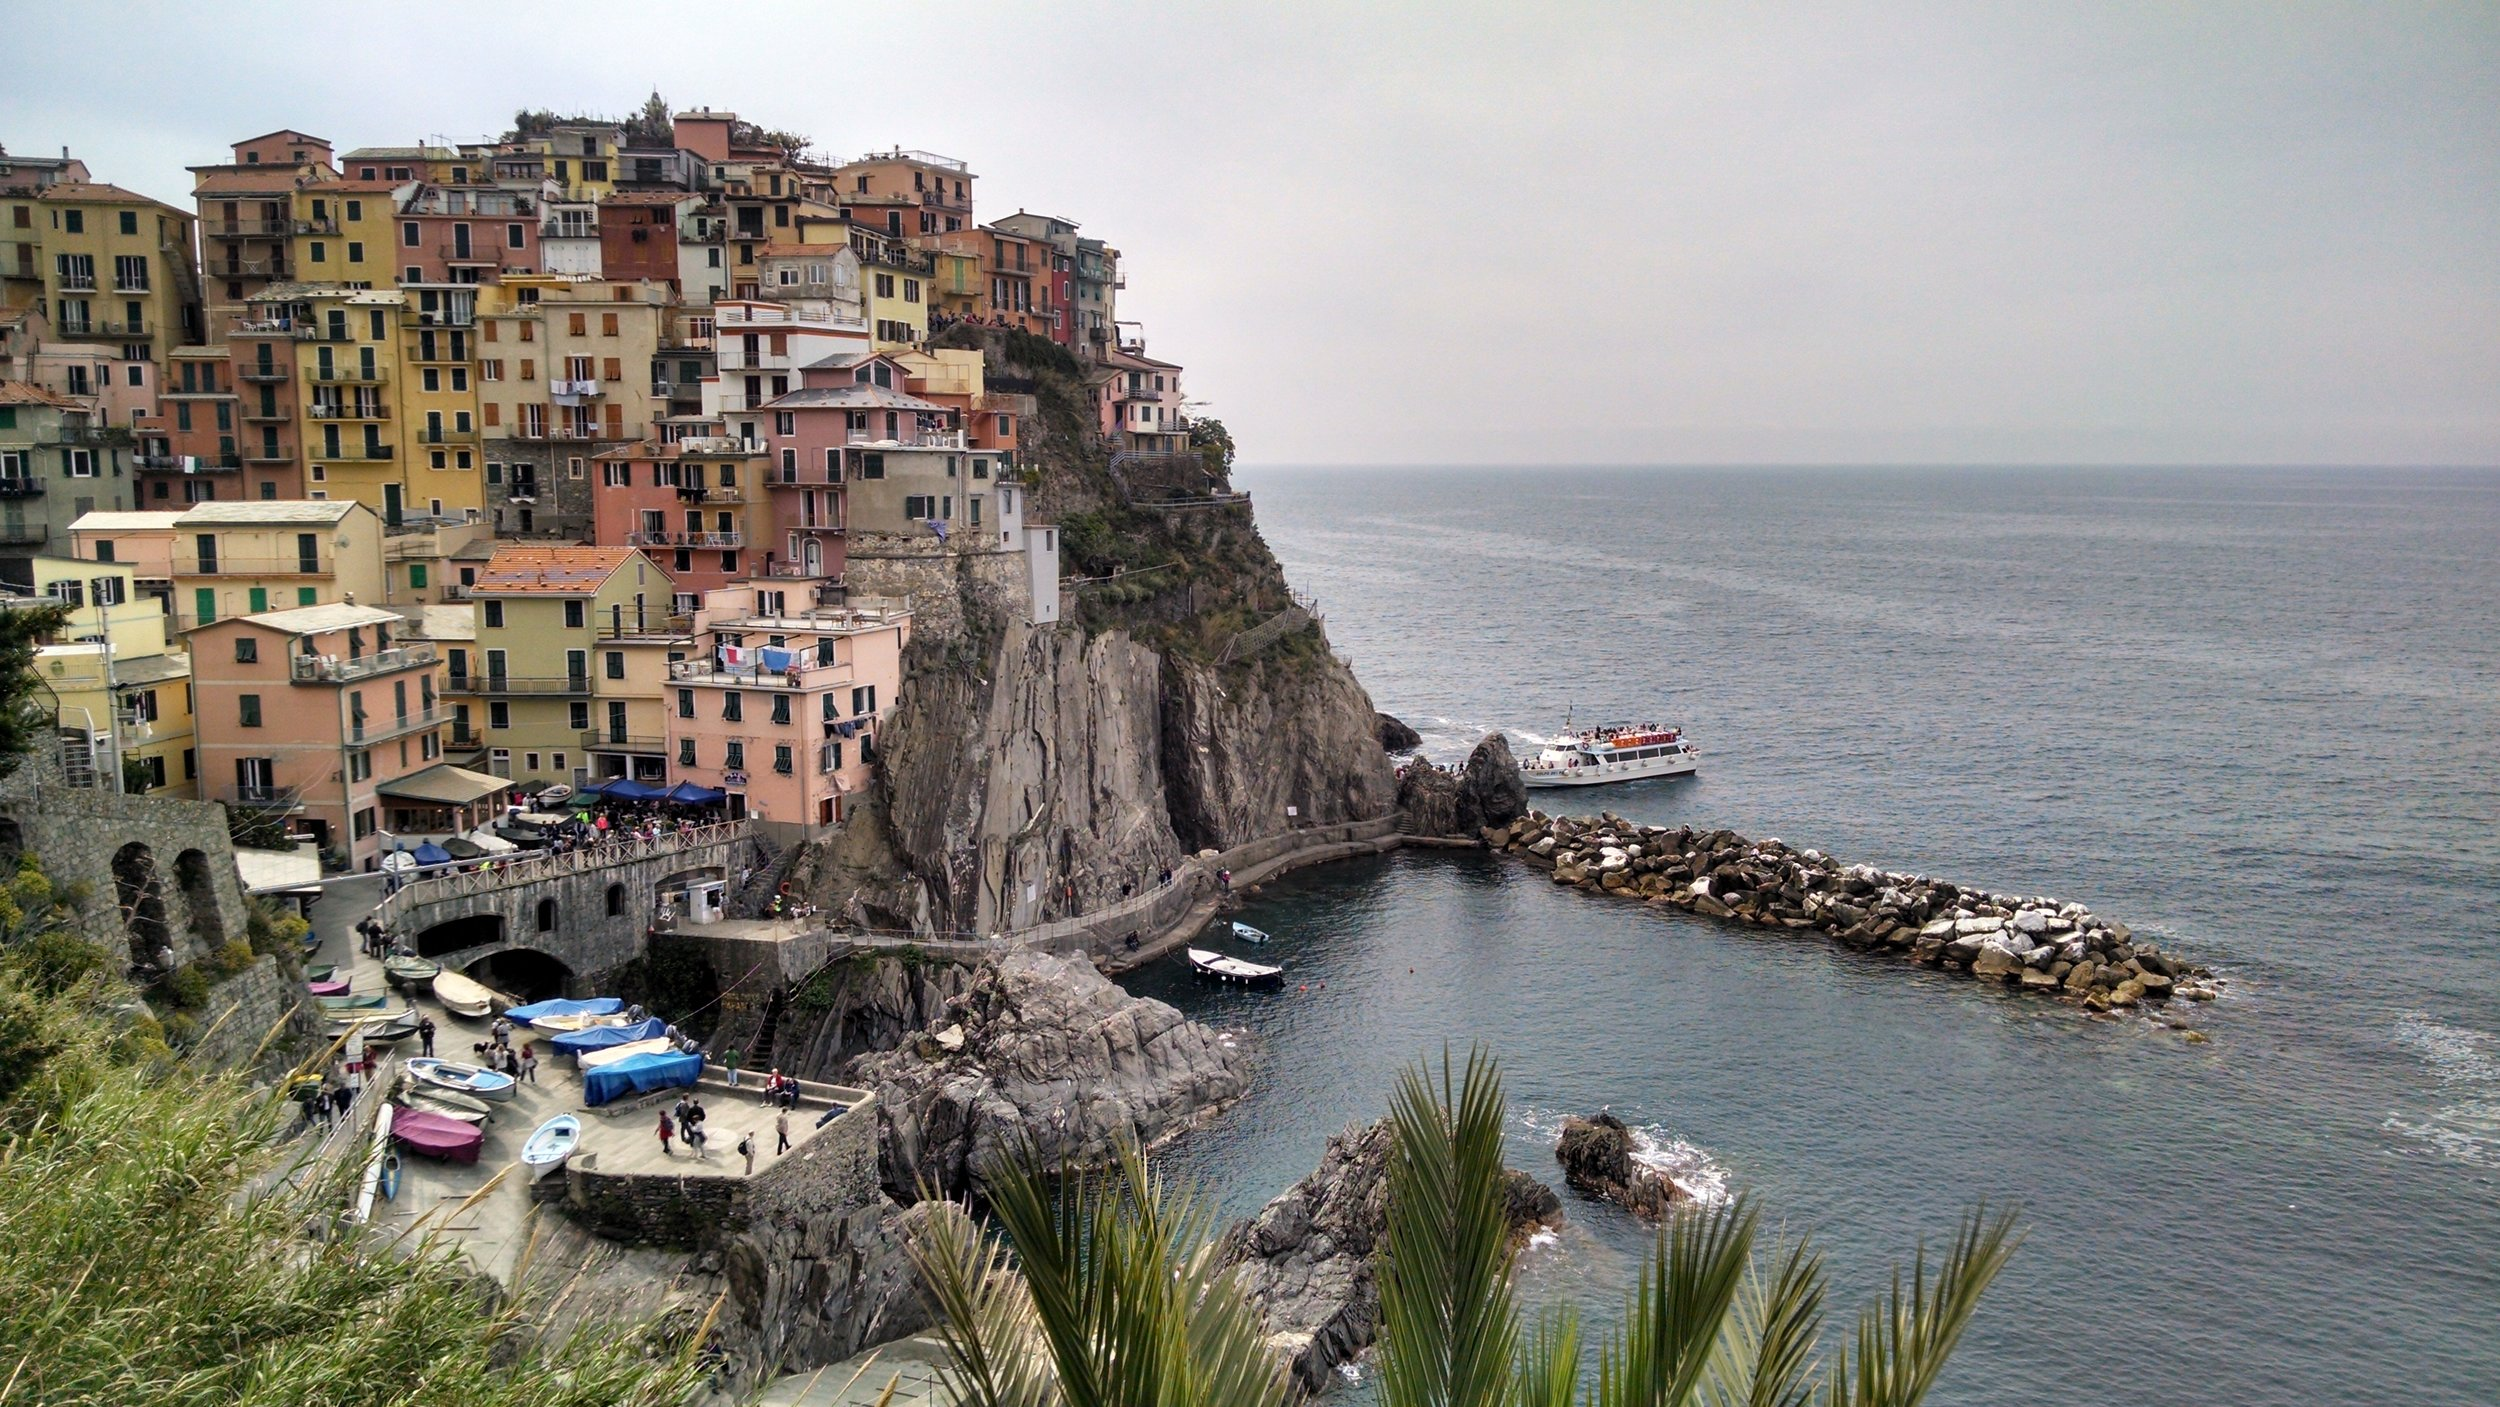 Study abroad course loads are often fairly light, allowing for plenty of time for weekend trips. Cinque Terre anyone?